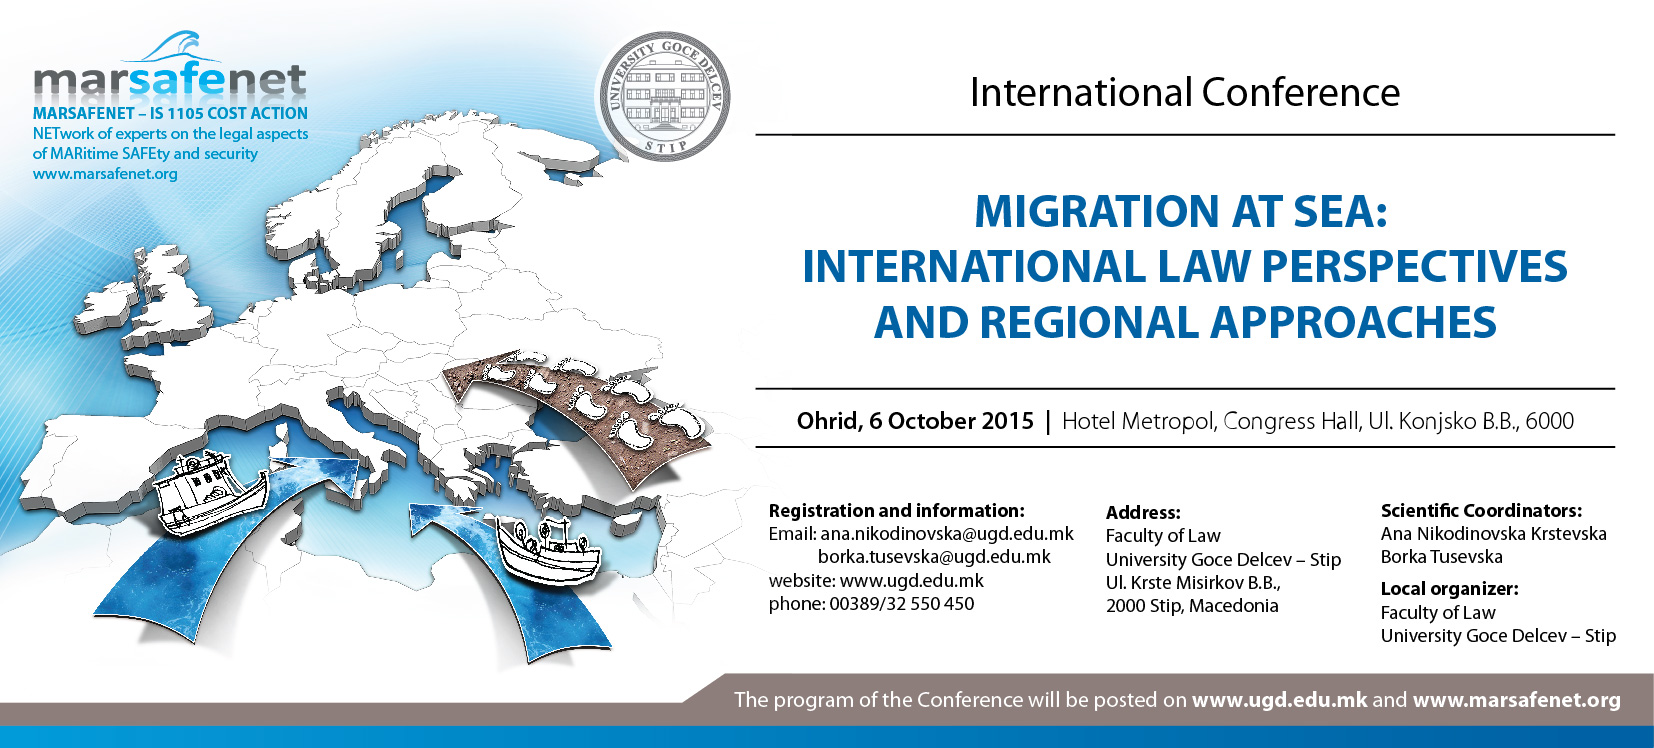 """""""Migrations at Sea: International Law Perspectives and regional Approaches"""" 6 ottobre 2015, Ohrid (Macedonia)"""